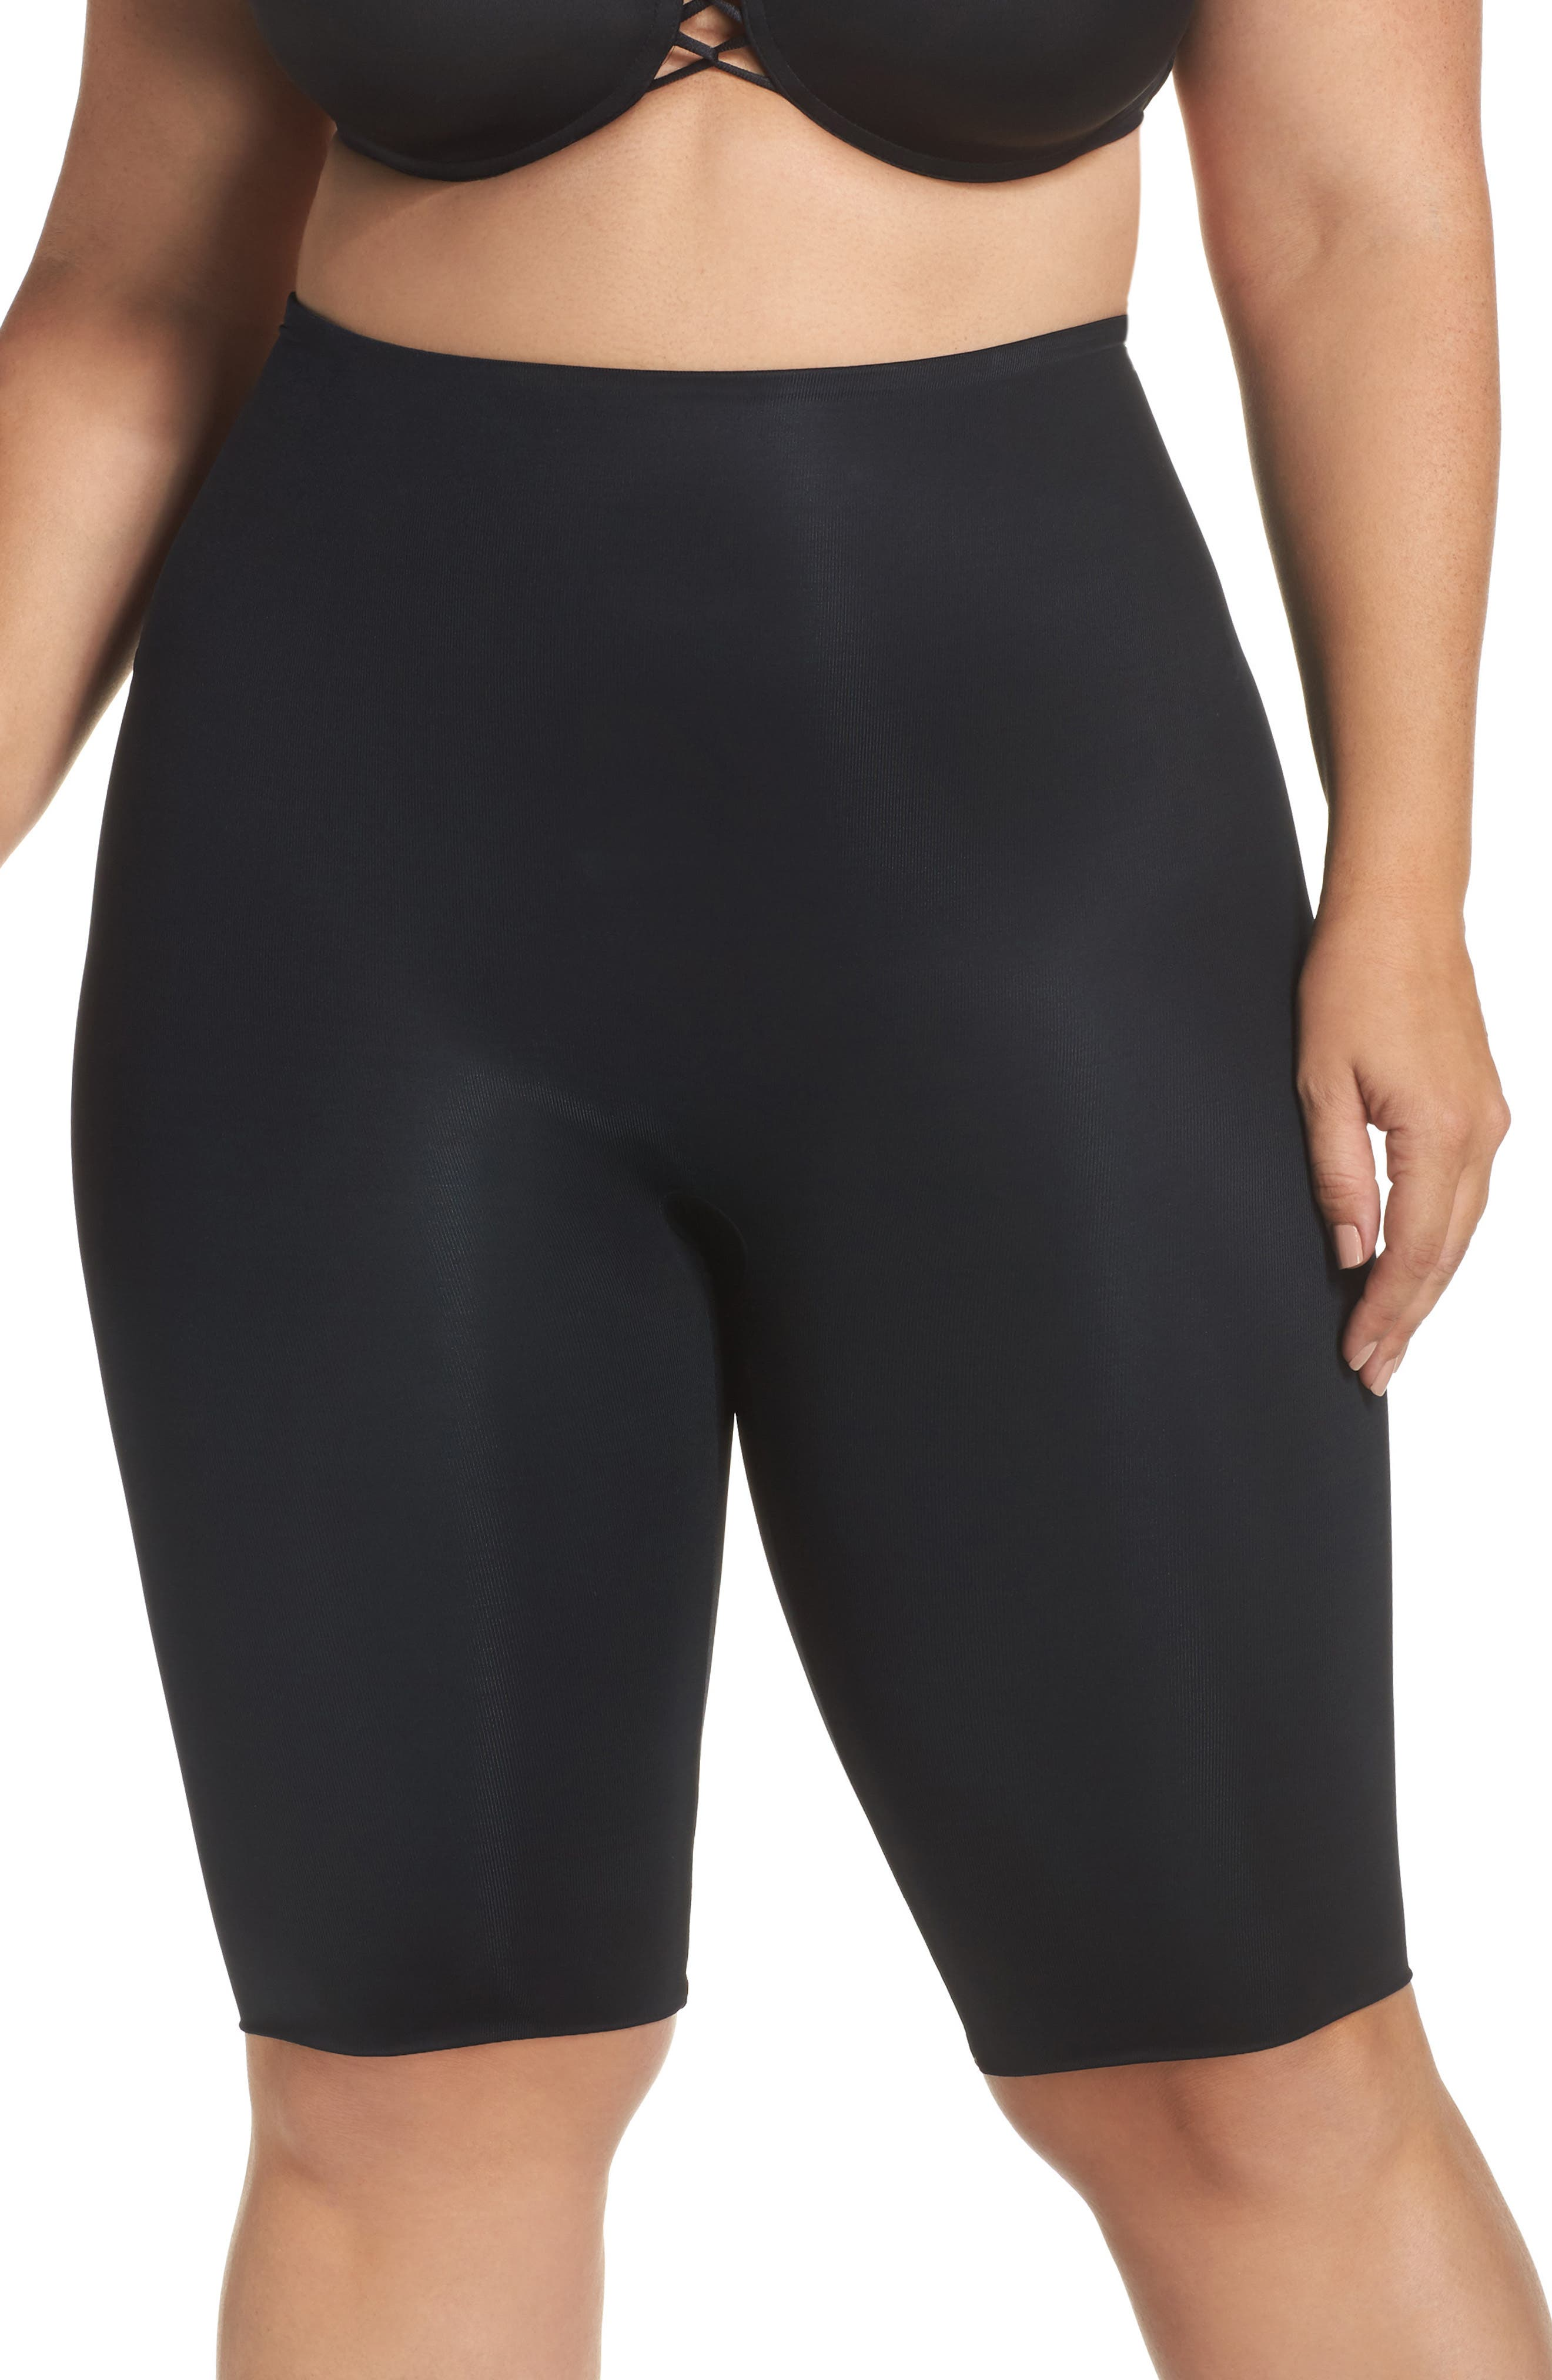 Power Conceal-Her Mid-Thigh Shorts,                         Main,                         color, 019